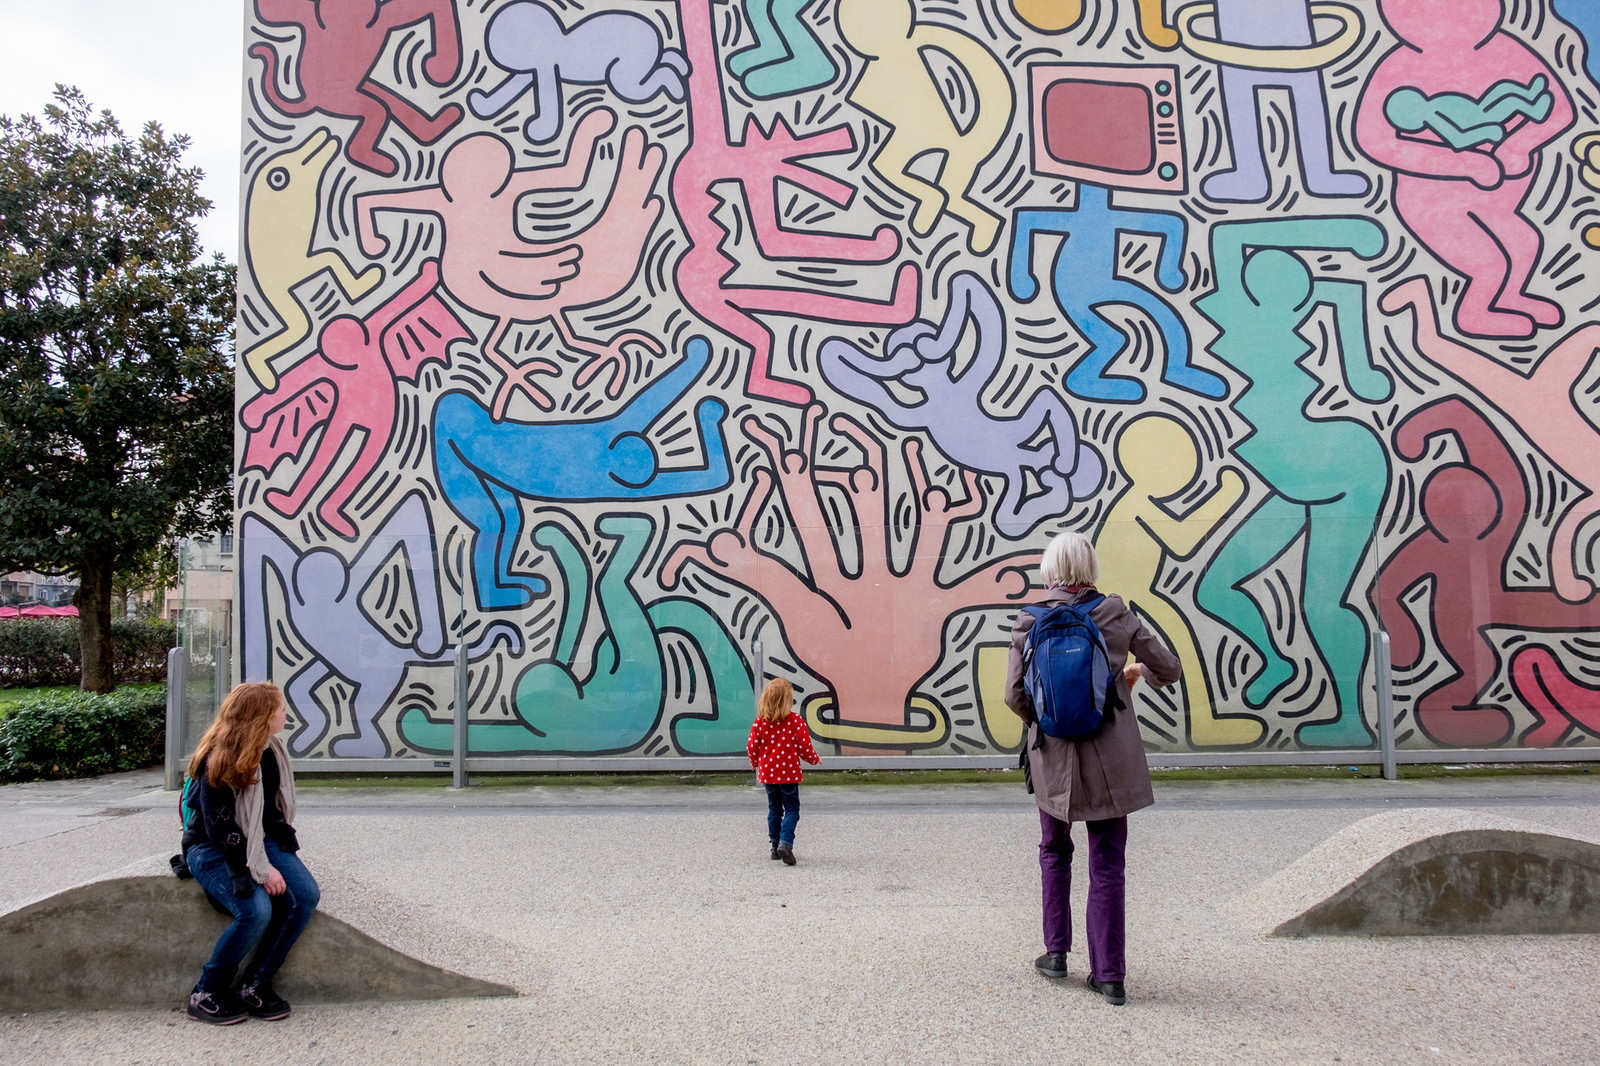 3murales keith haring ©darren and brad flickr